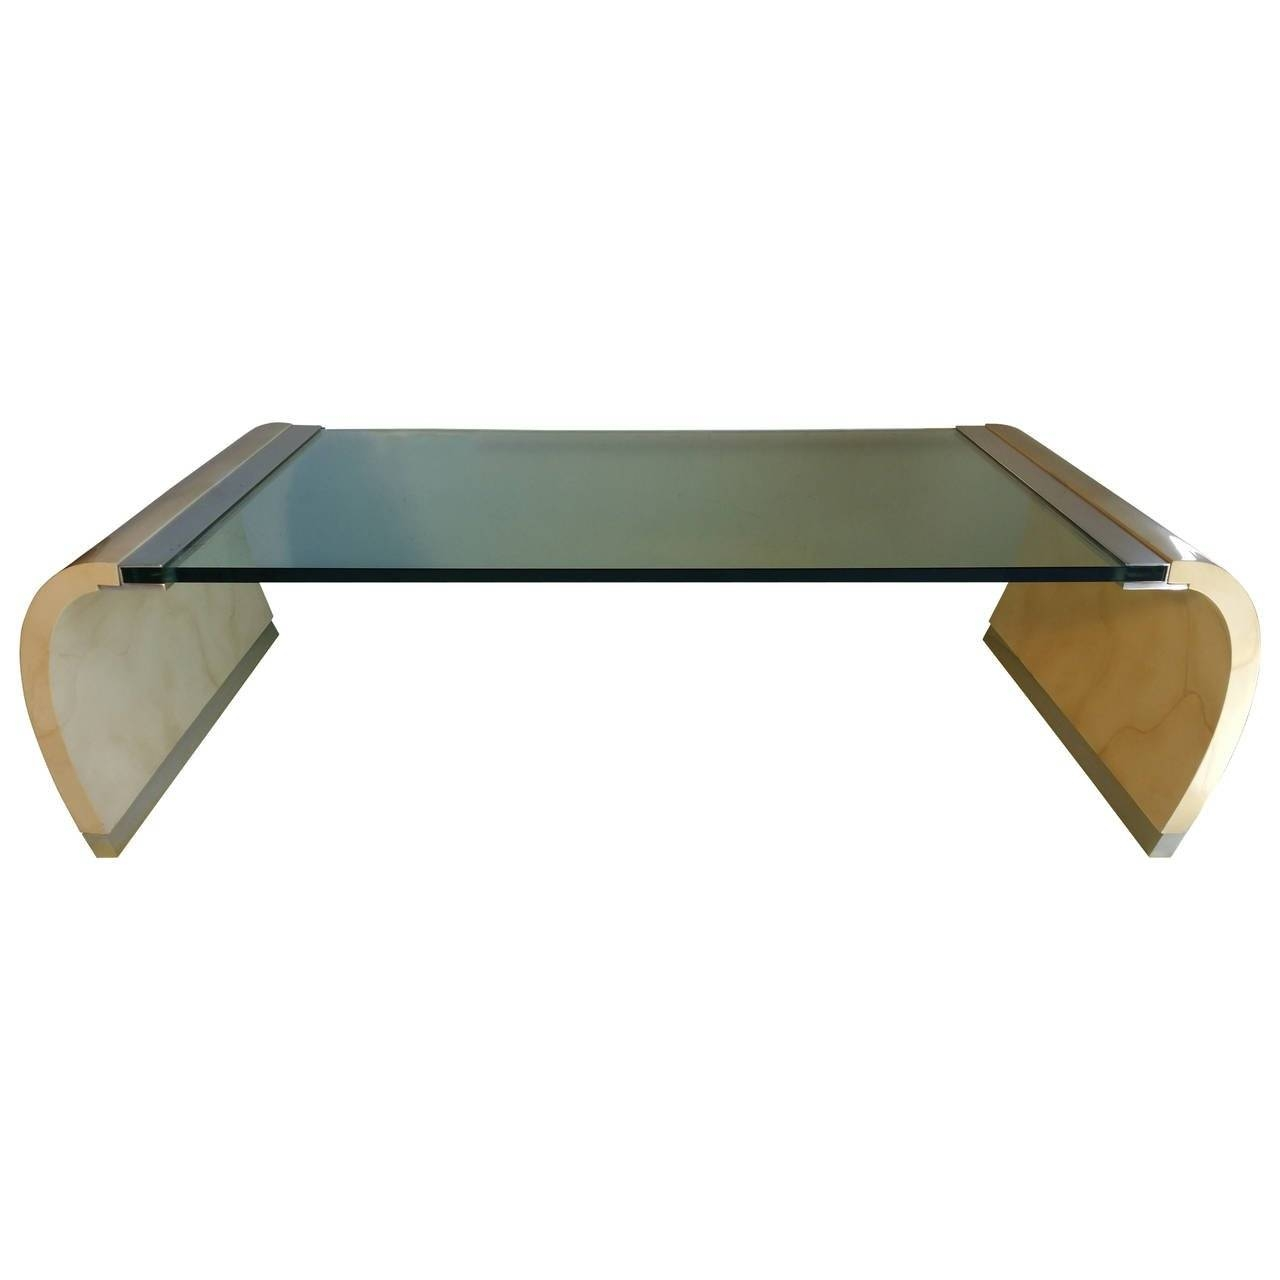 Glass And Lacquer Waterfall Coffee Table In The Manner Of Karl throughout Lacquer Coffee Tables (Image 14 of 30)